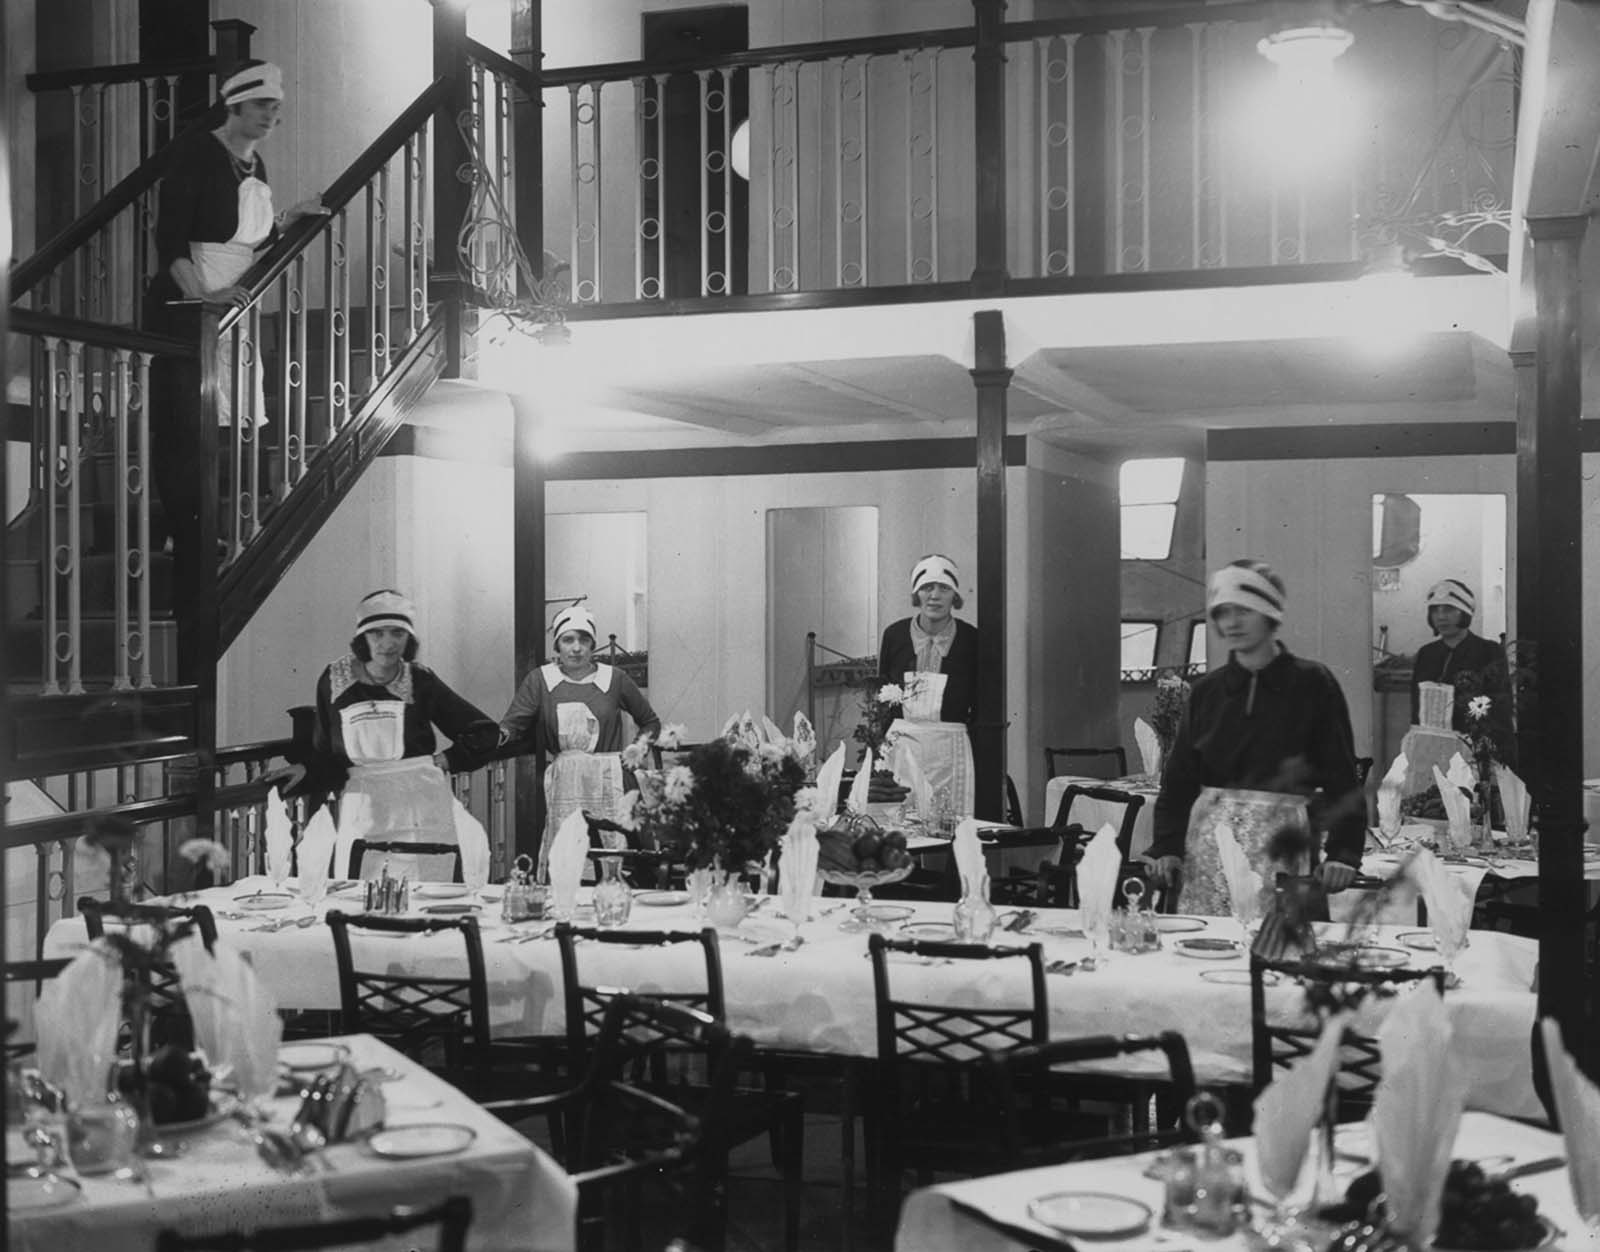 The lounge is rearranged as a dining room for meals. 1929.